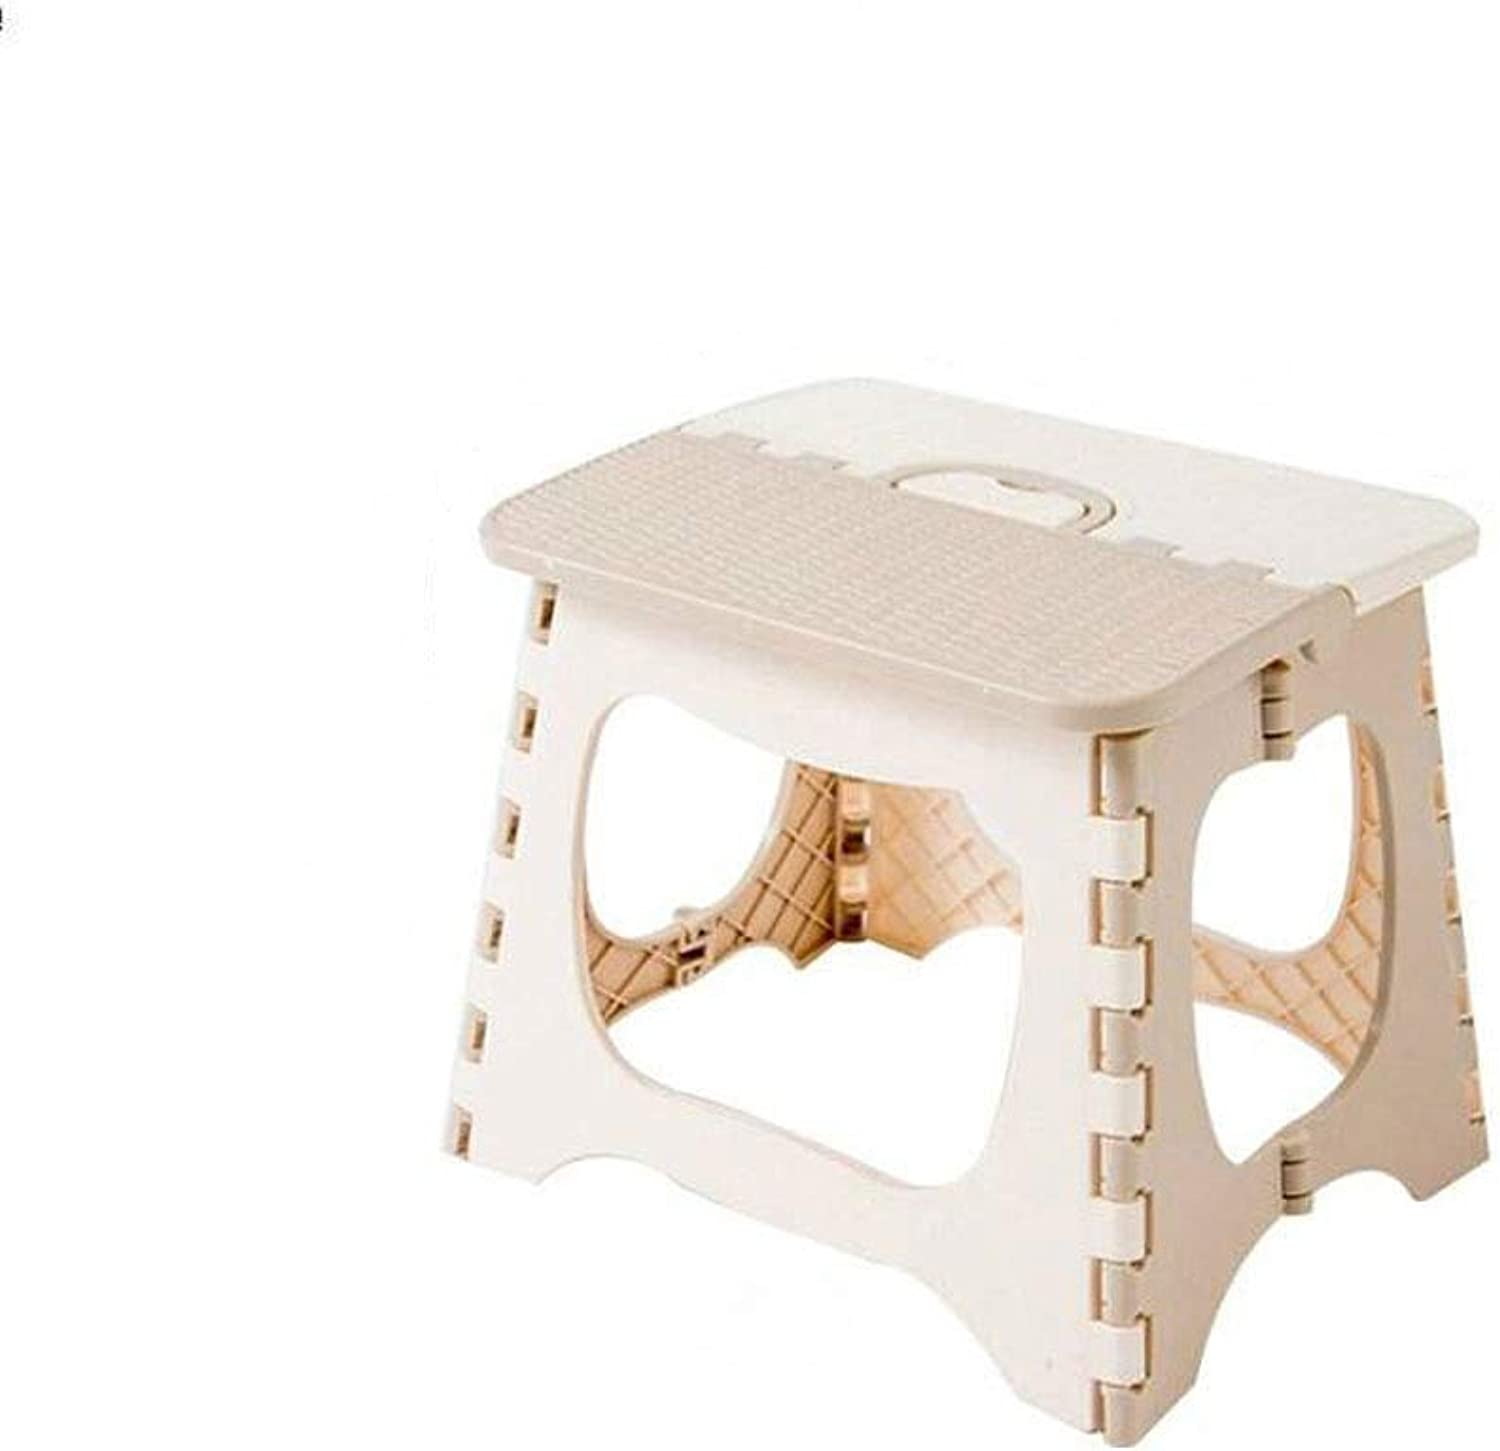 FASKT Folding Step Stool Lightweight Plastic Step Stool,Foldable Step Stool for Kids and Adults,Non Slip Folding Stools for Kitchen Bathroom Bedroom